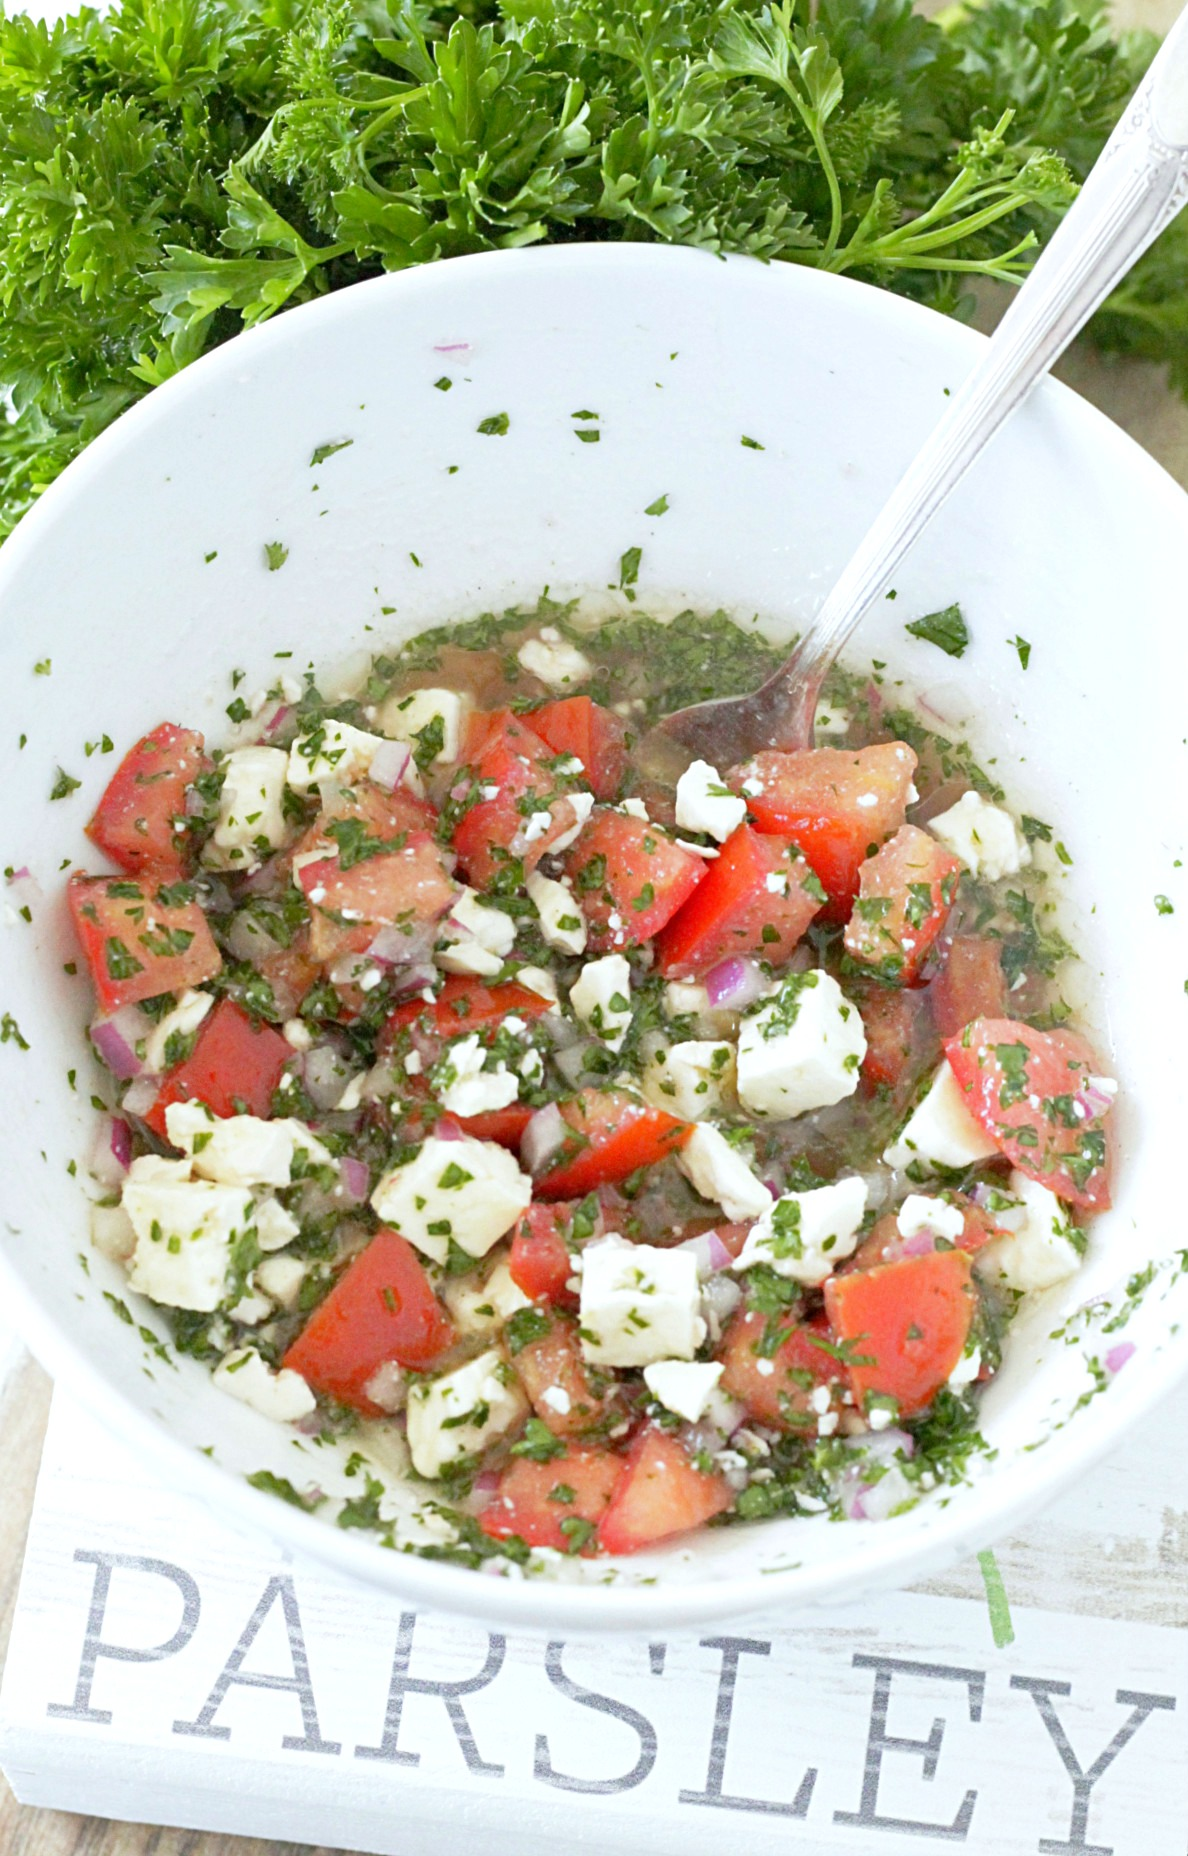 greek chicken rice bowls picture of dressing